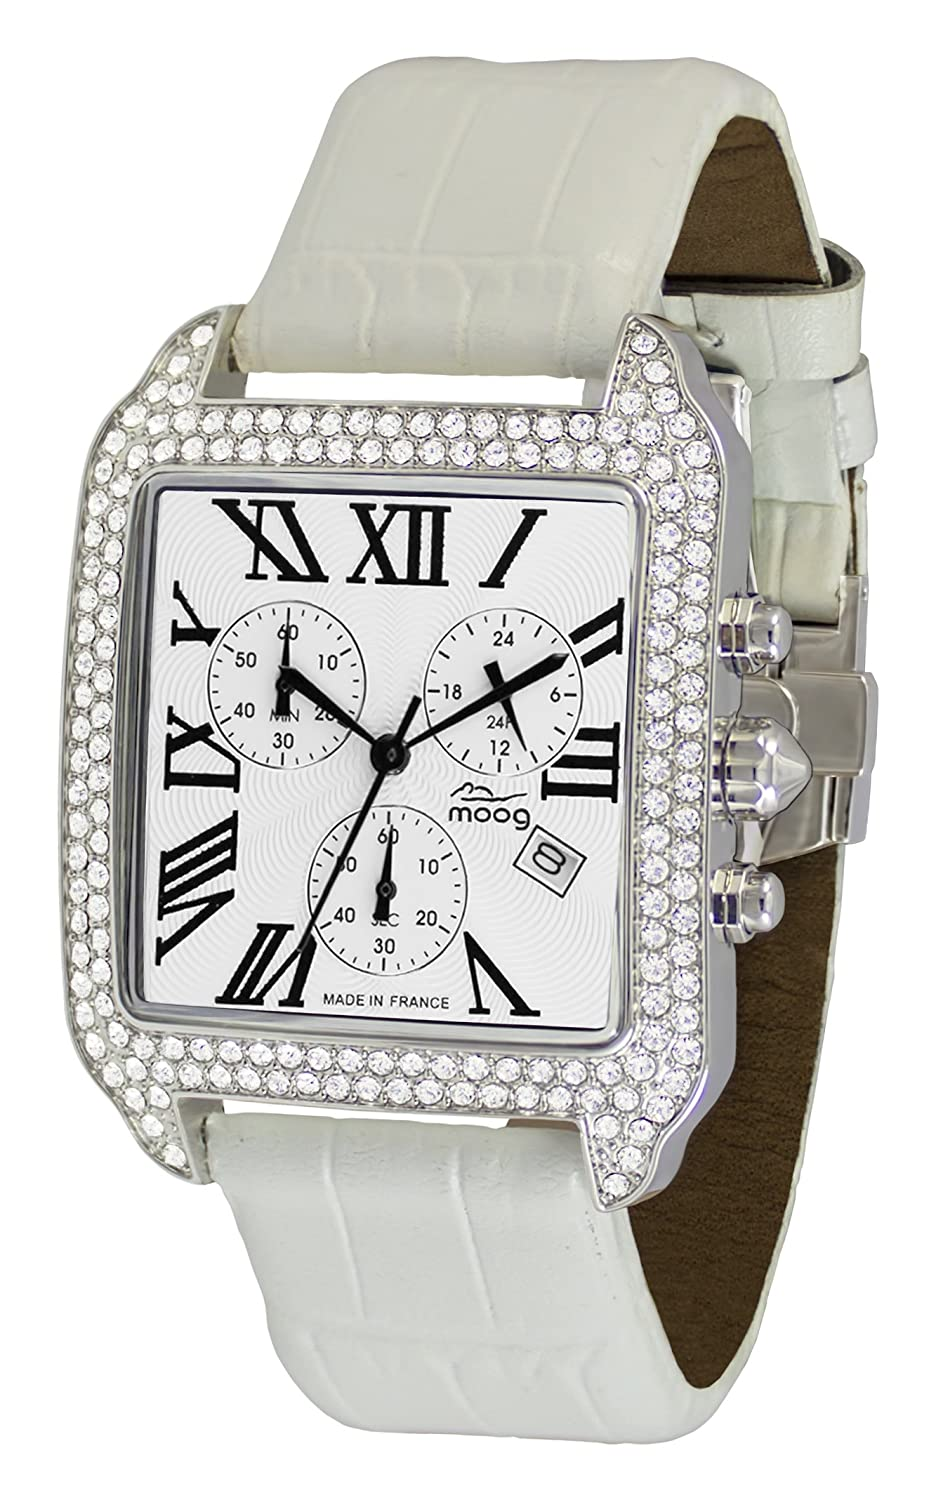 Paris Reloj Con Blanca Different Para Mujer Esfera Think Moog cLqS4Aj3R5